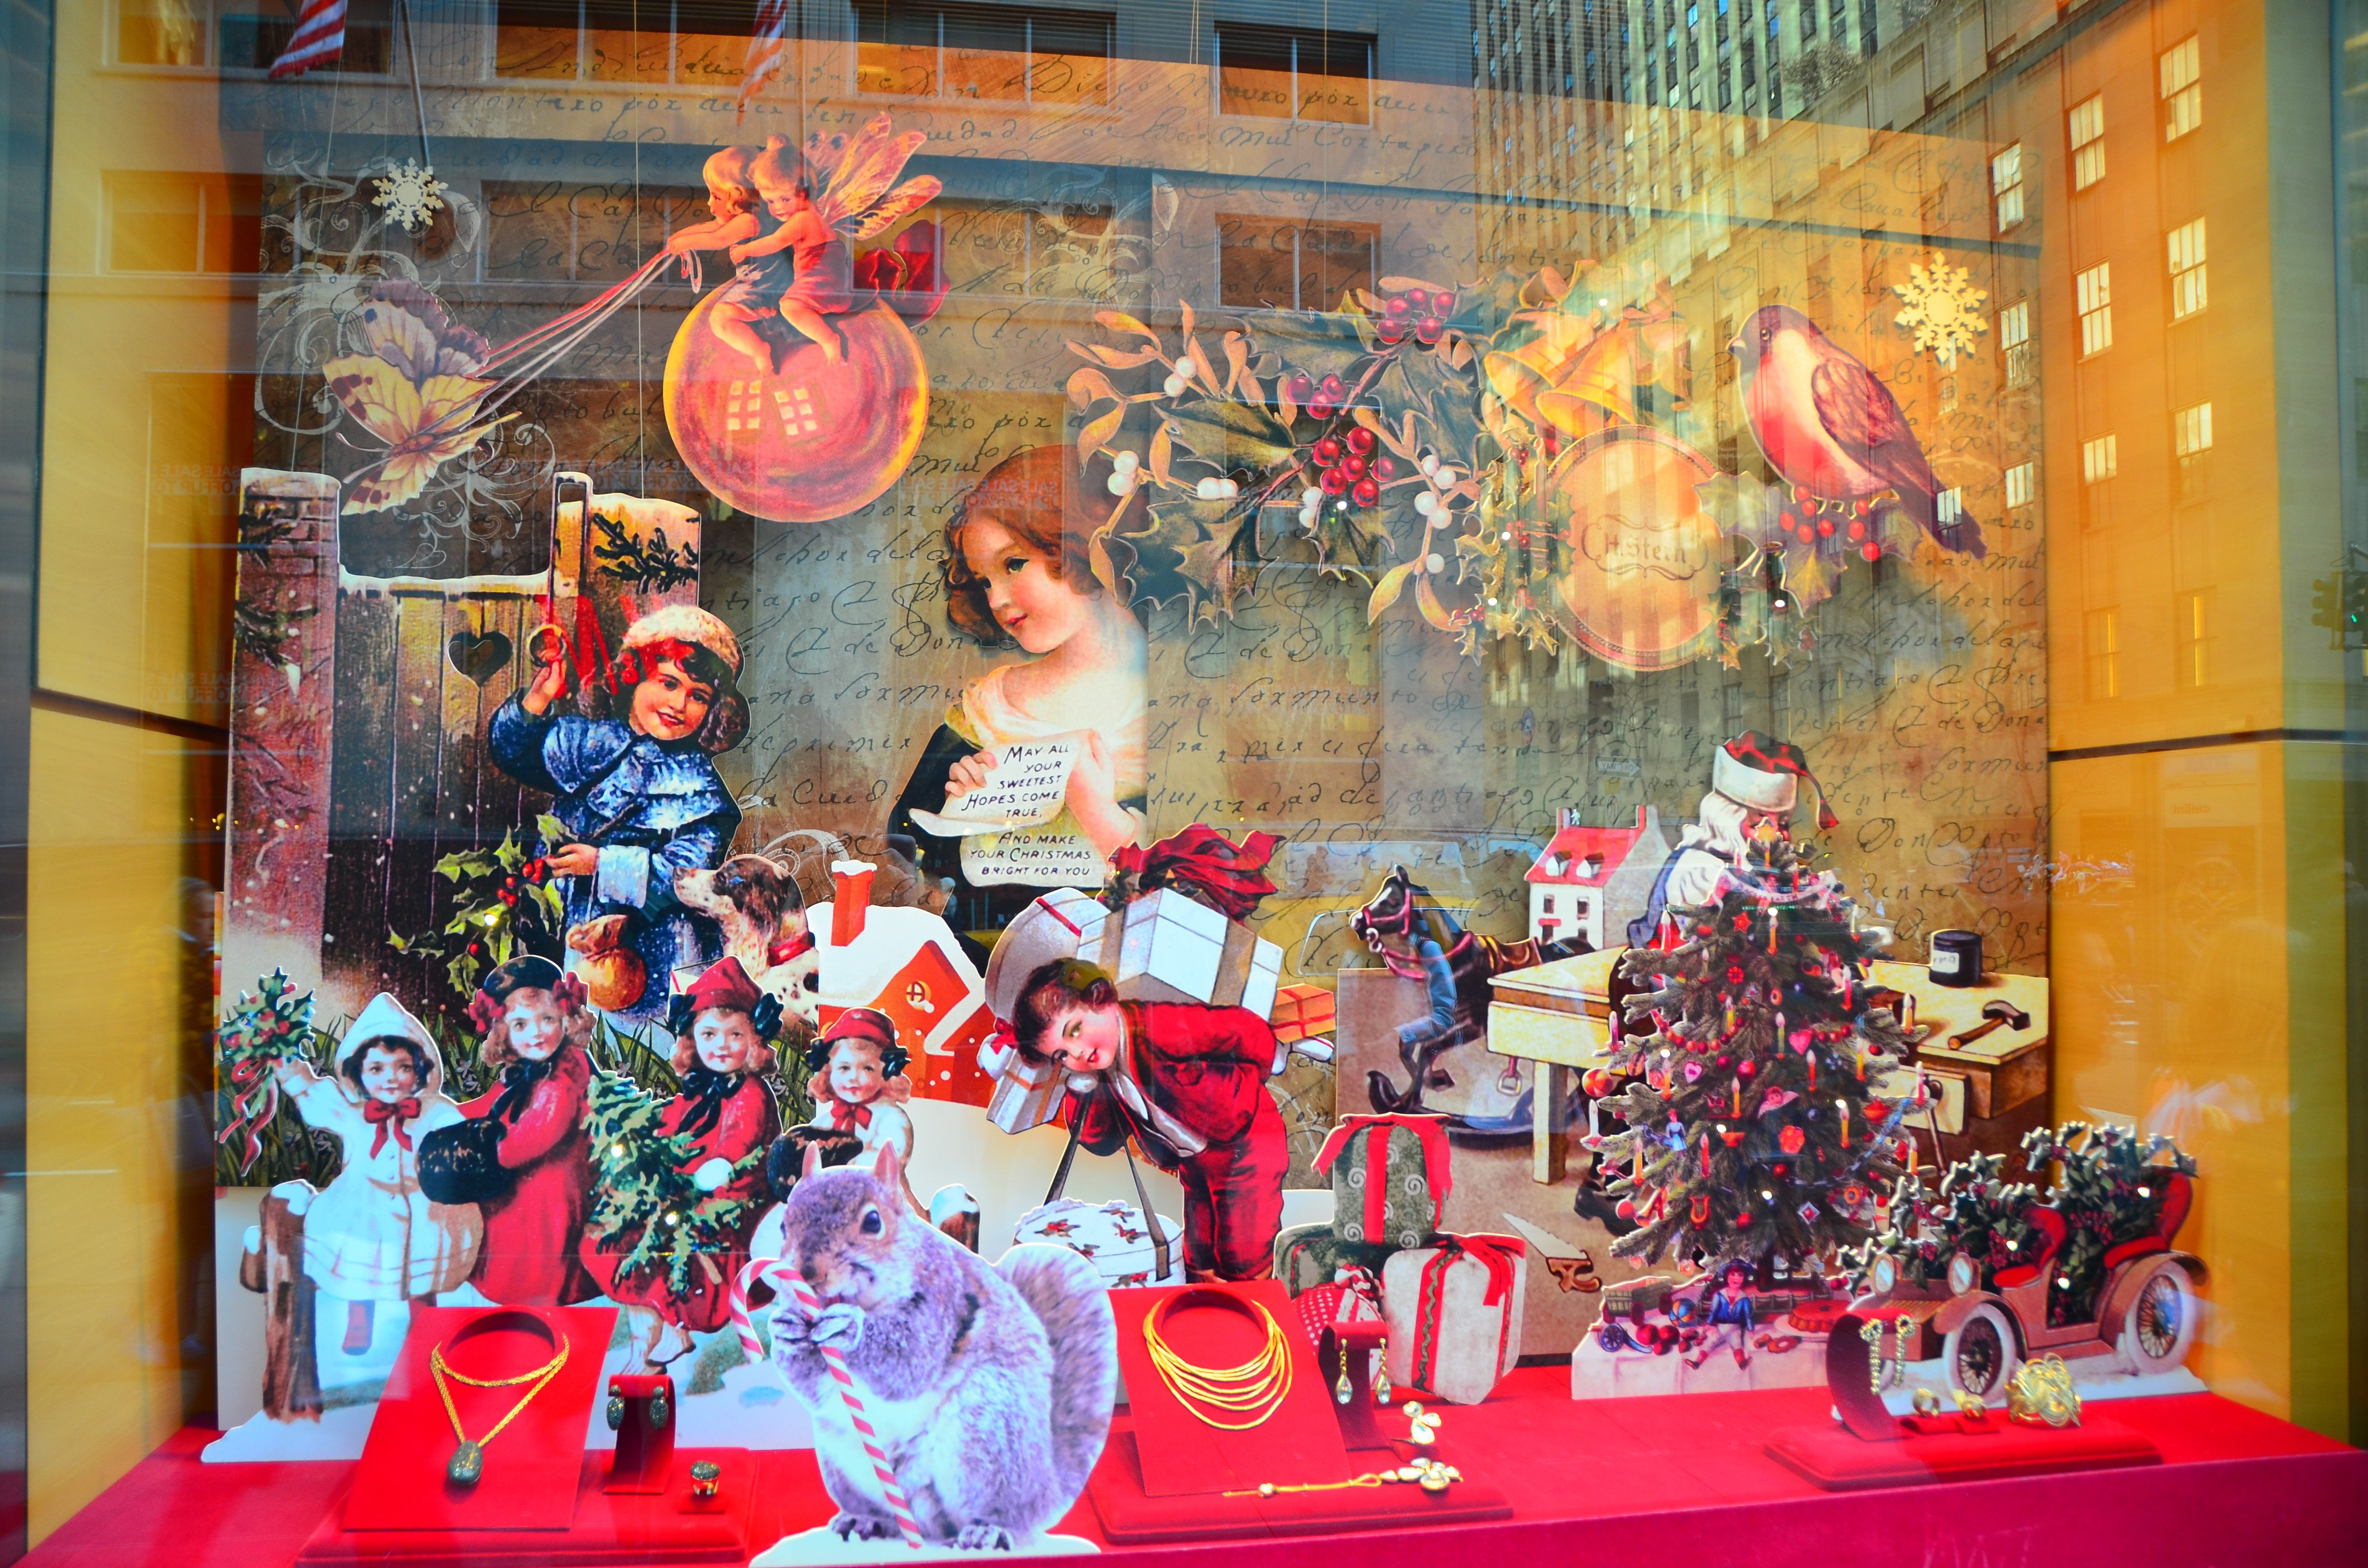 Christmas Windows New York City Style! | The Traveling Humanist